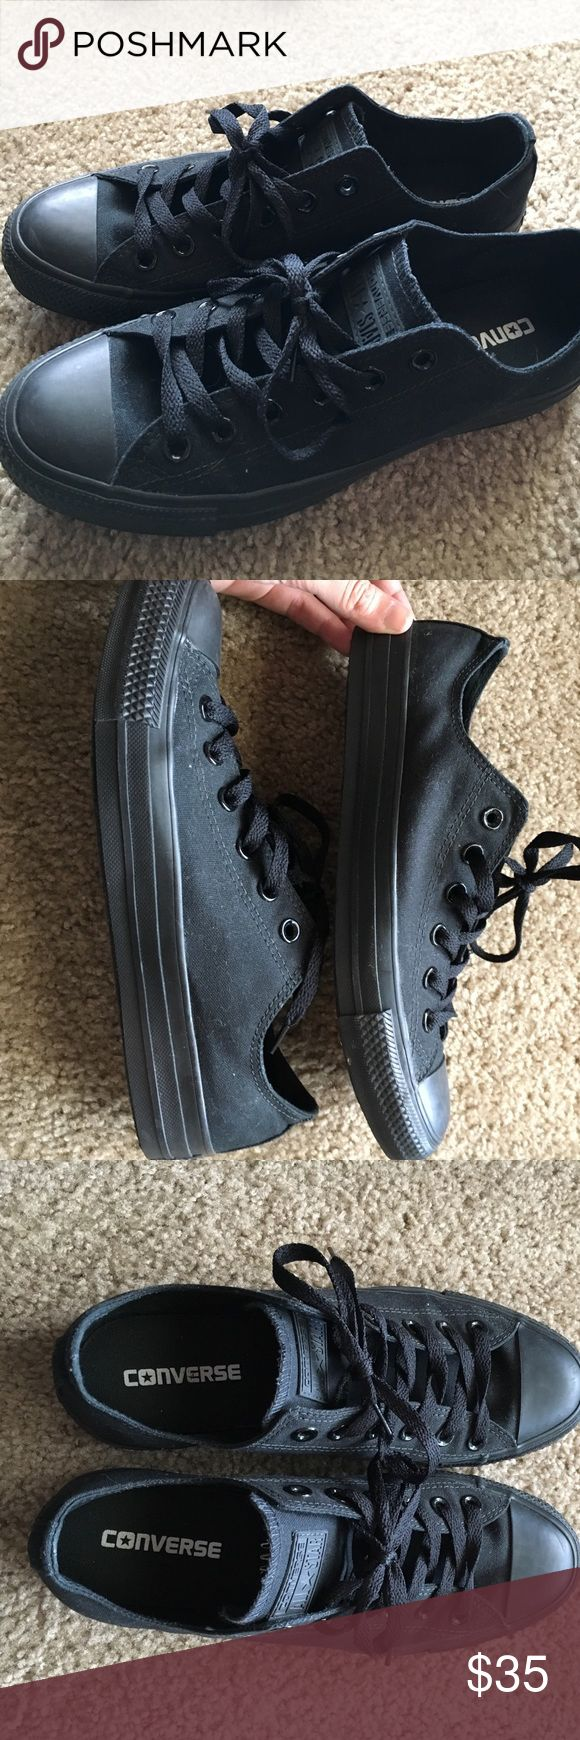 Black converse low tops sz W 9 M 7 Black low top converse worn one time and in excellent condition. Women's size 9, Men's size 7. Converse Shoes Sneakers